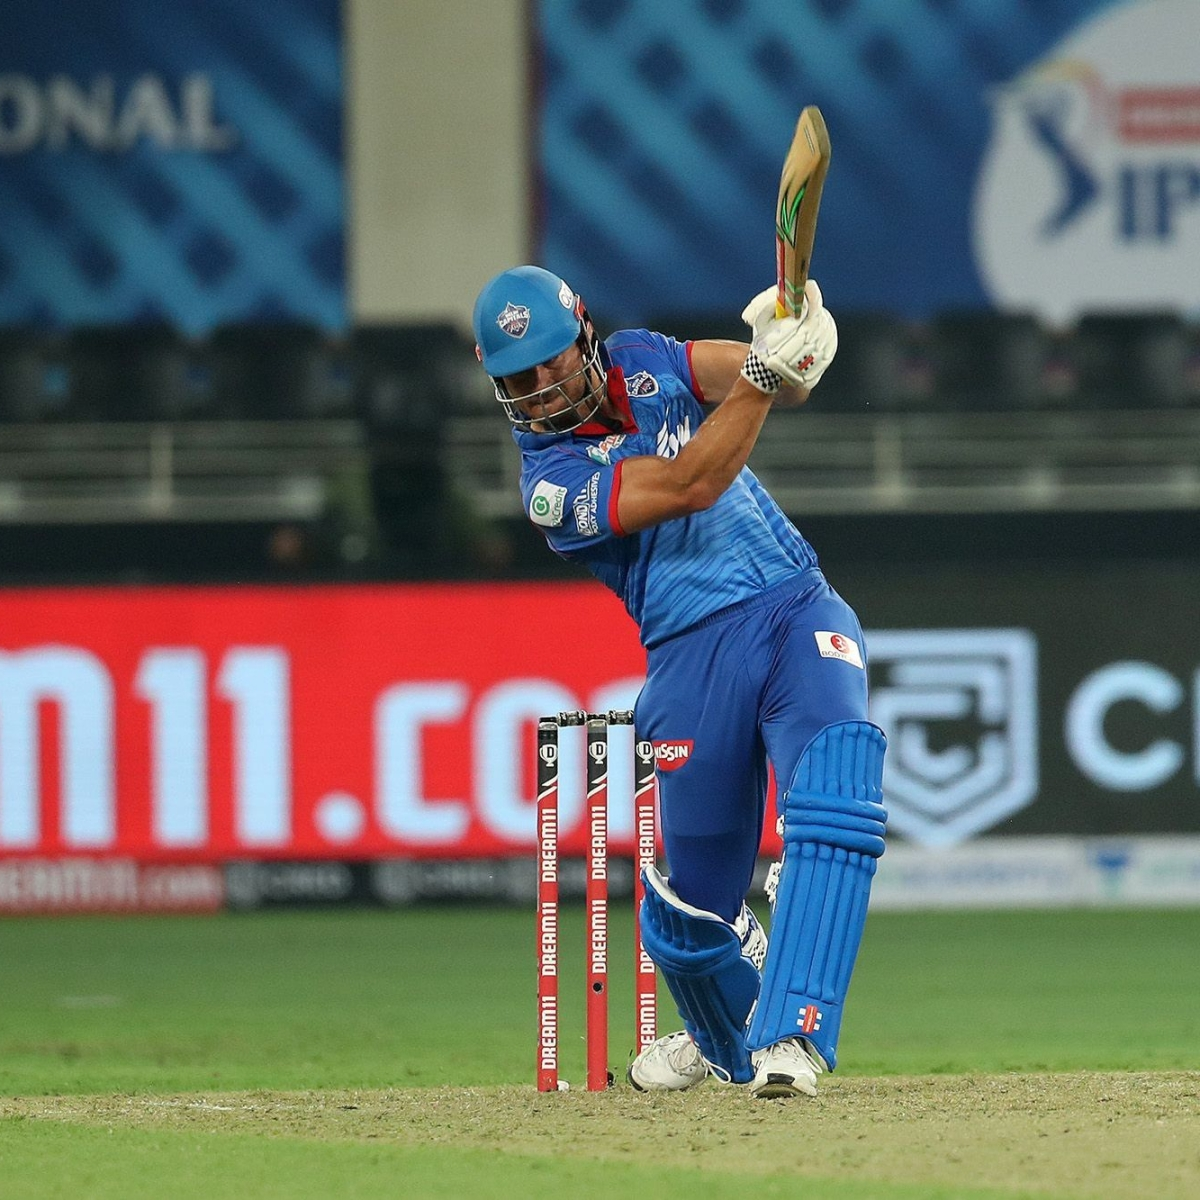 IPL 2020: We're good enough to win against 'dangerous team', says DC's Marcus Stoinis